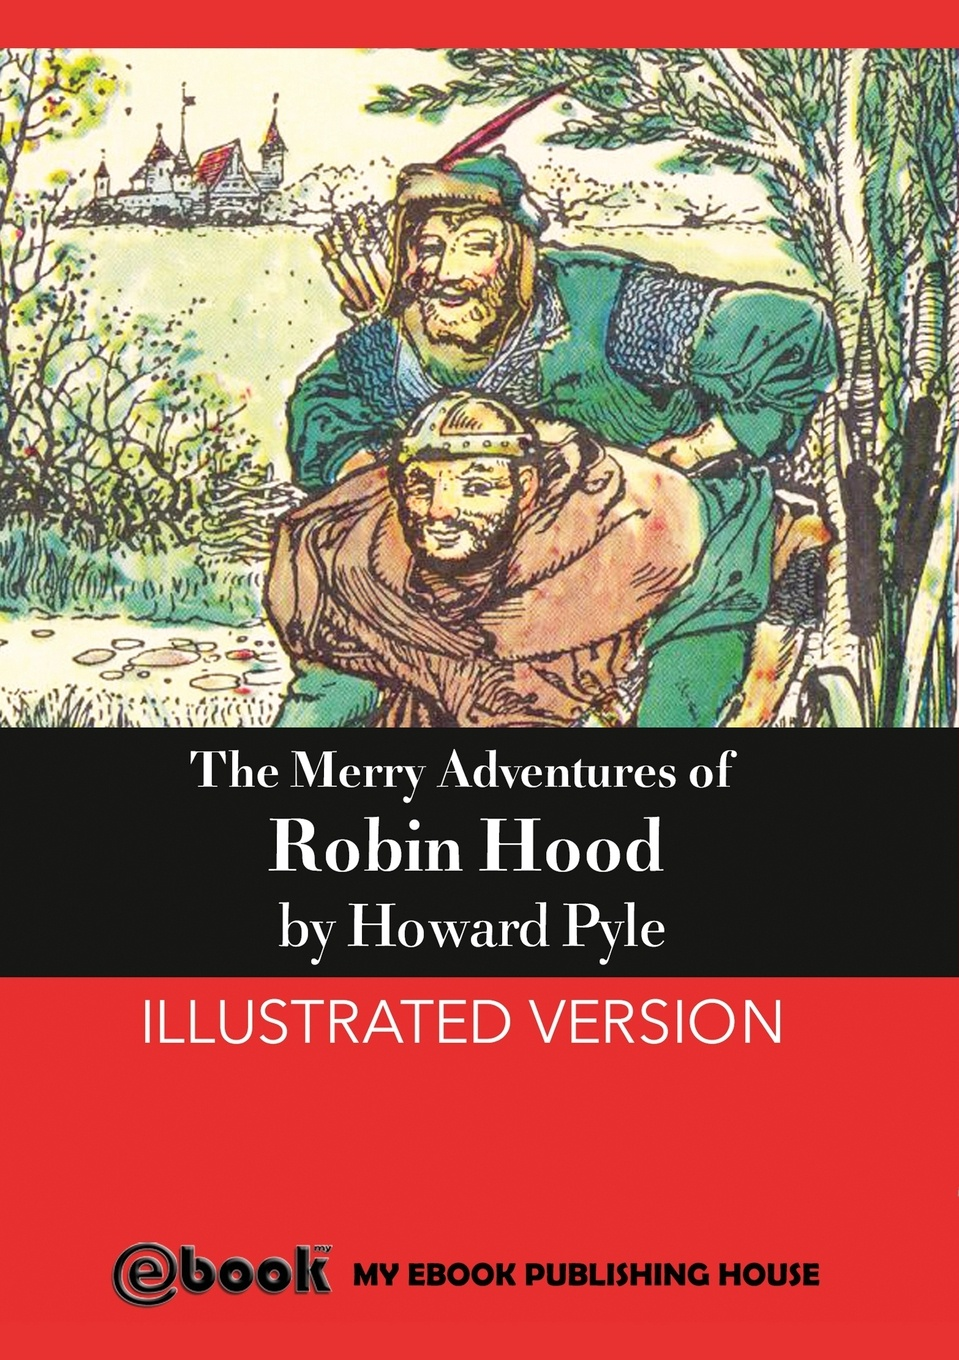 Howard Pyle The Merry Adventures of Robin Hood говард пайл the merry adventures of robin hood